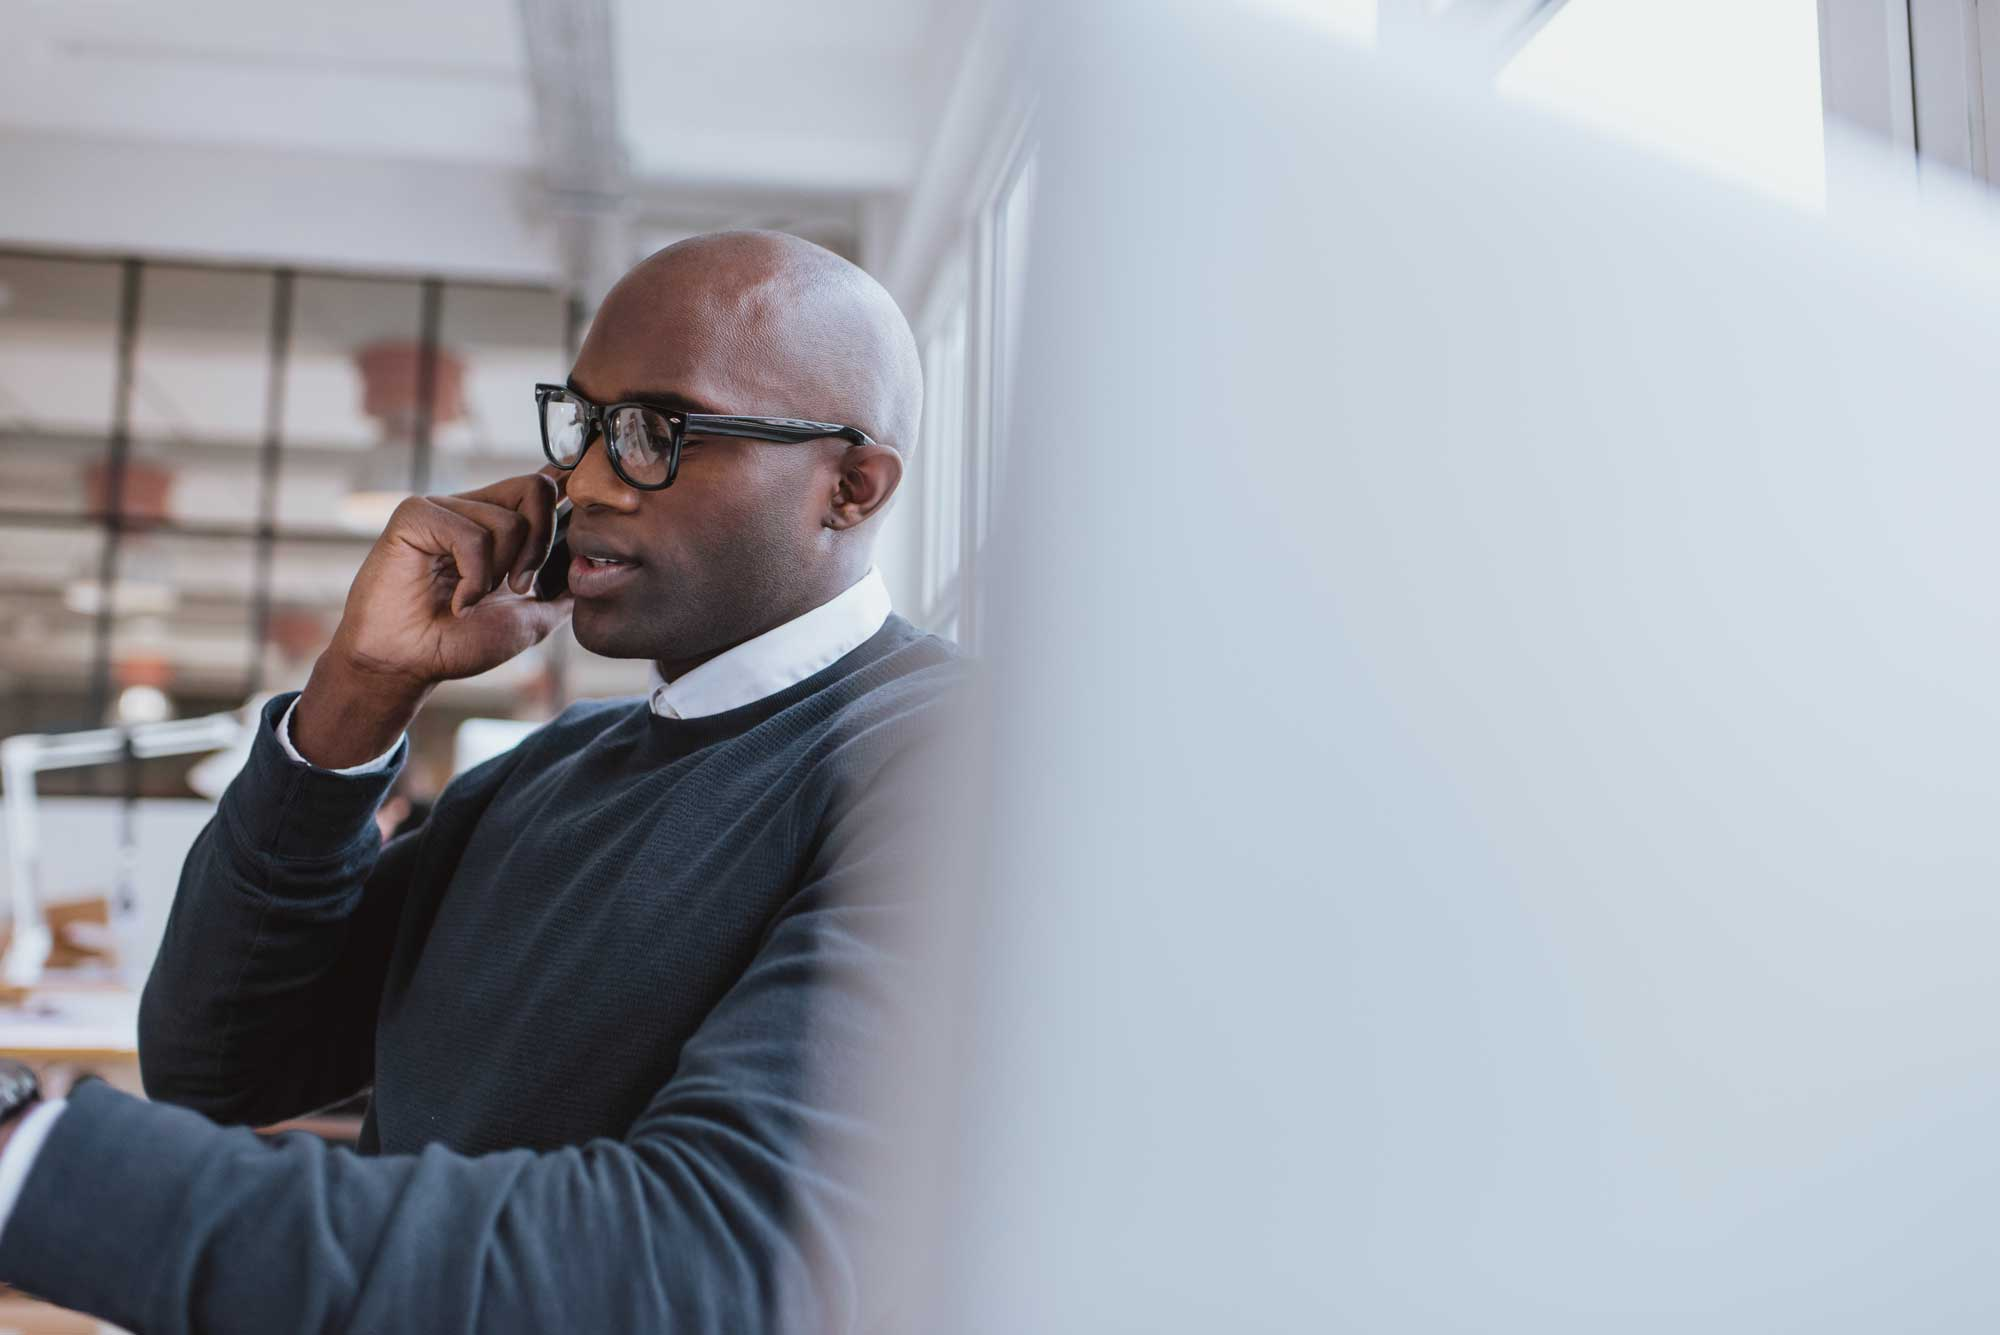 Man on phone - Engage a Global PEO